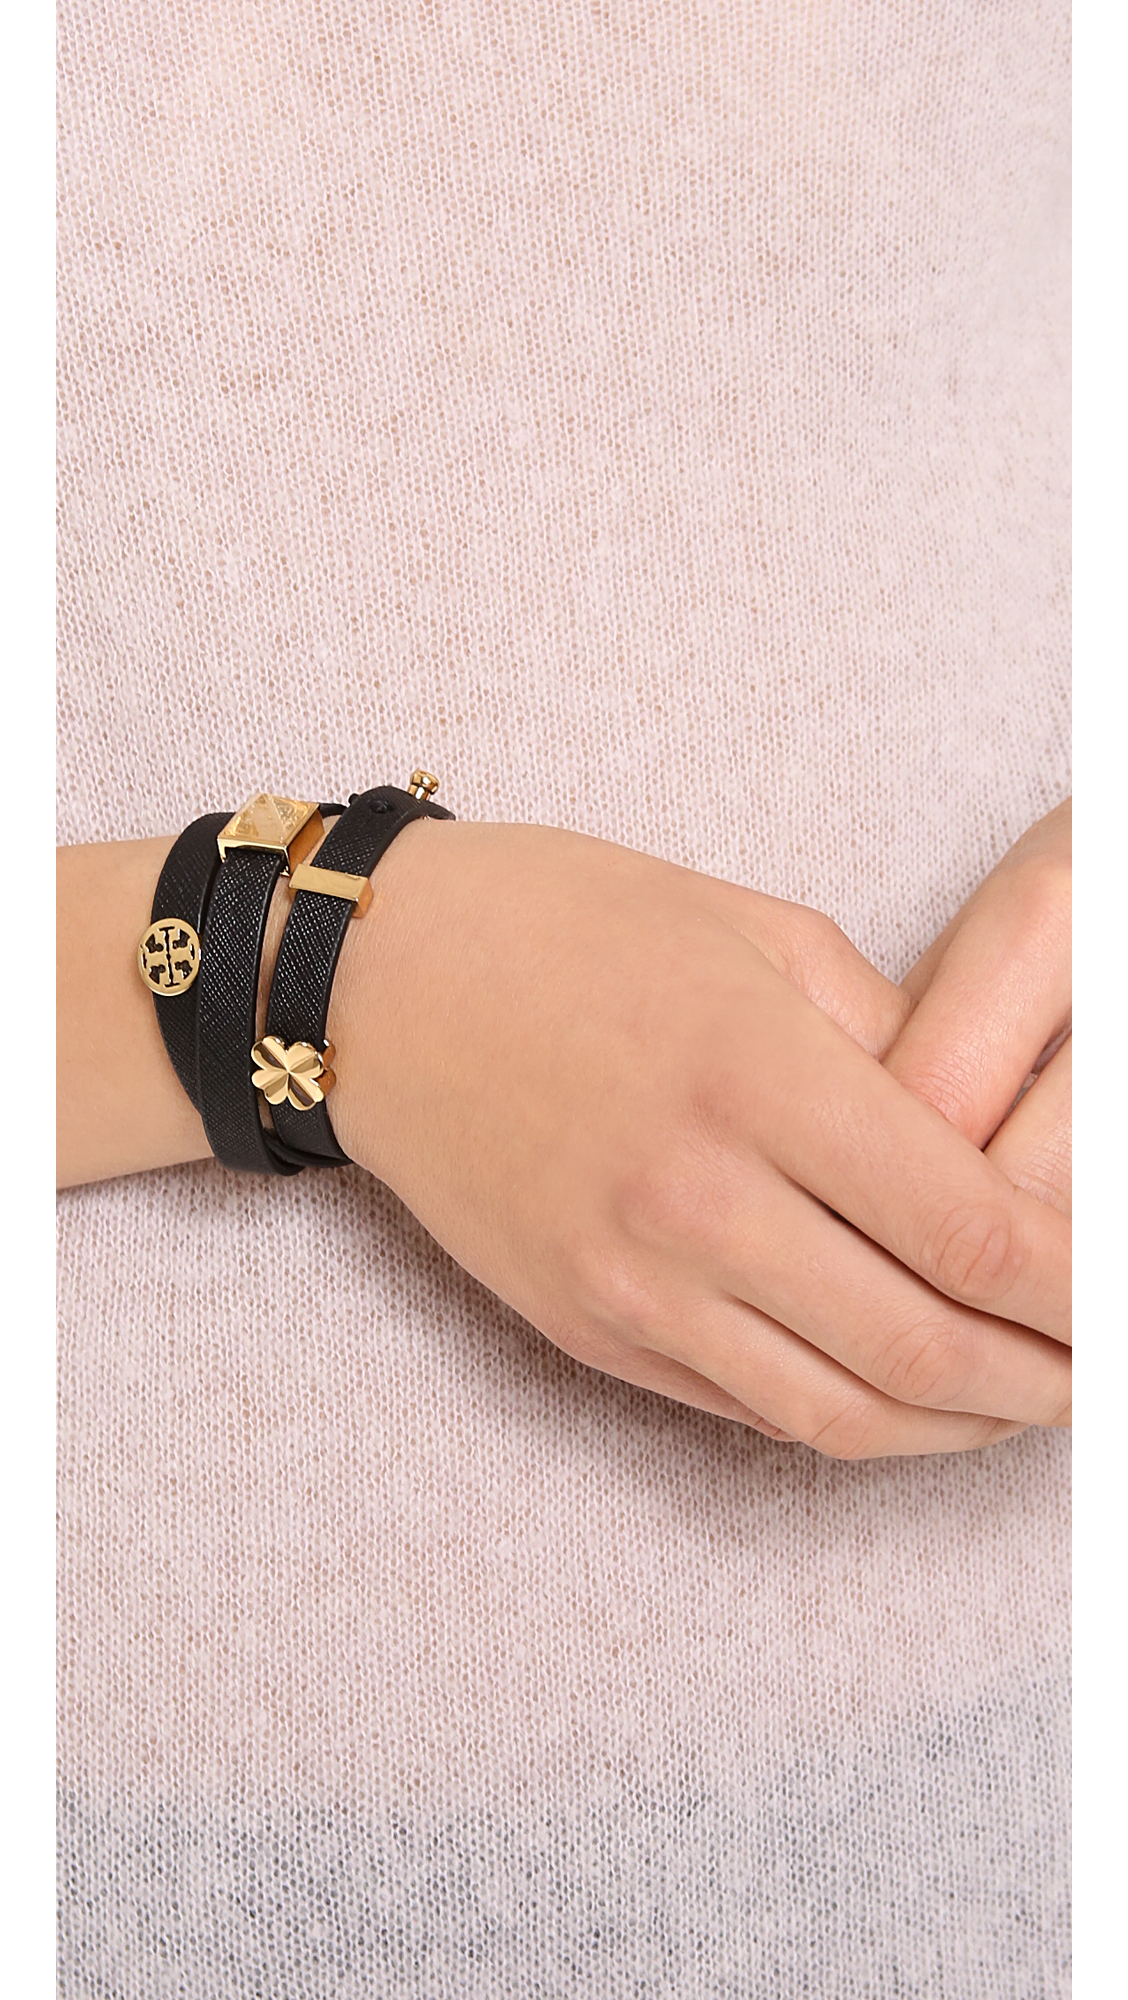 triple rodrigani cyrus black yohan wrap leather bracelet products